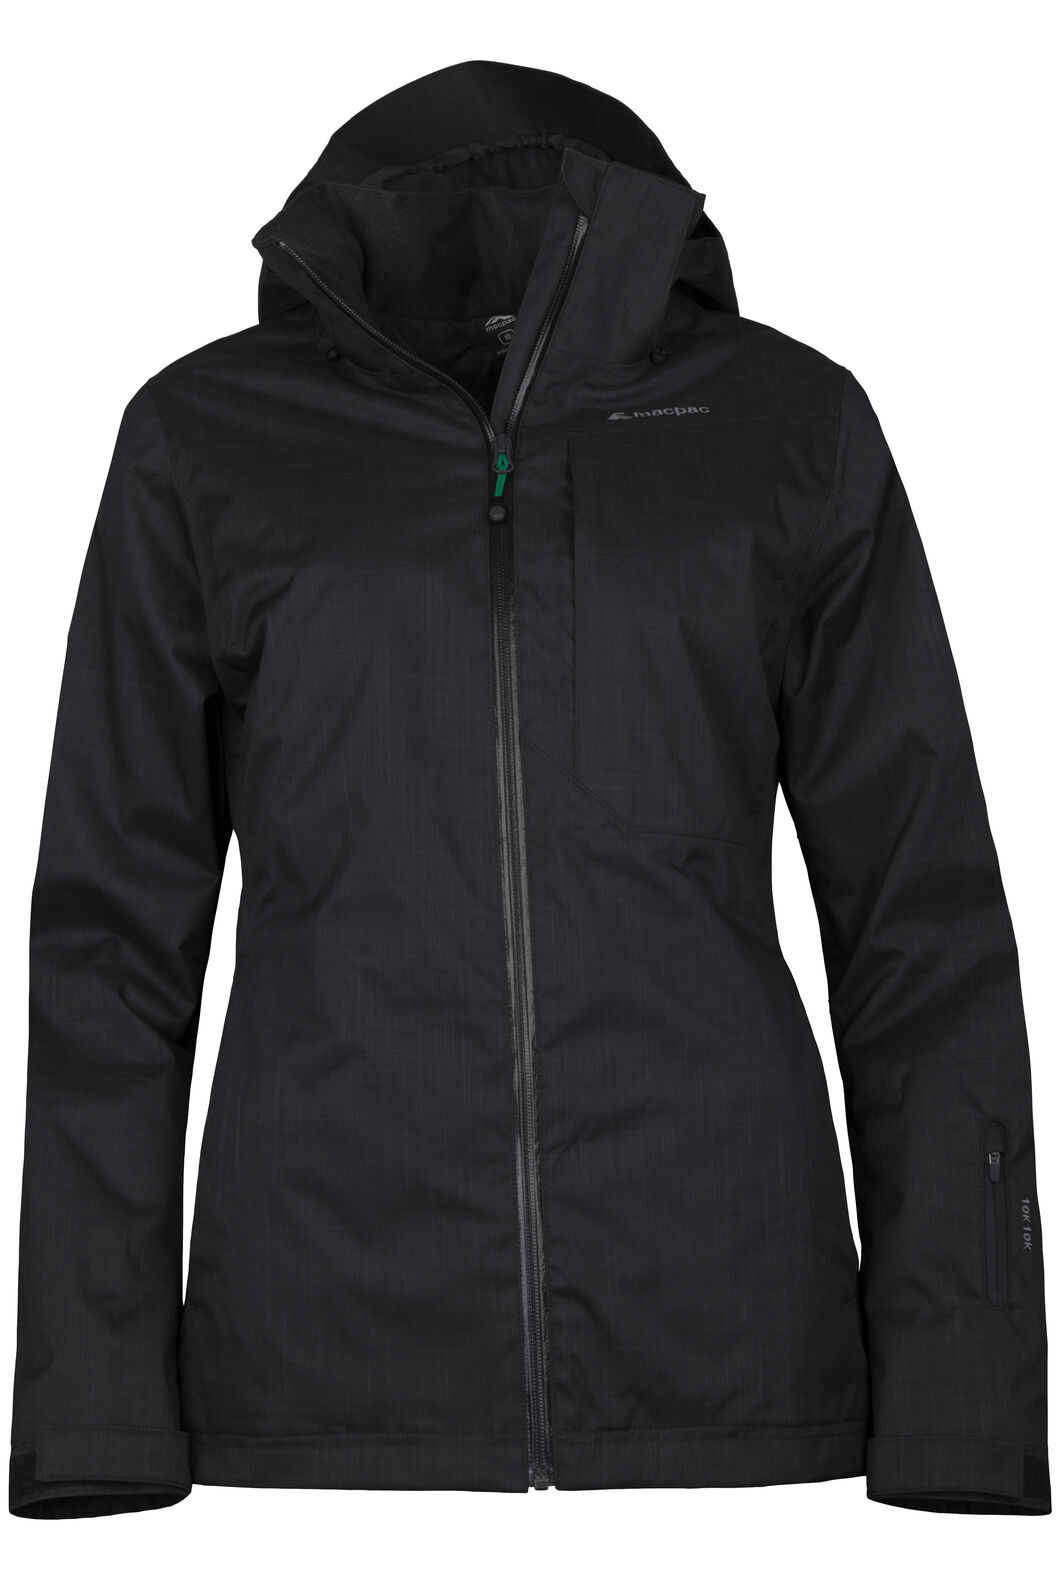 Macpac Powder Ski Jacket - Women's, Black/Black, hi-res